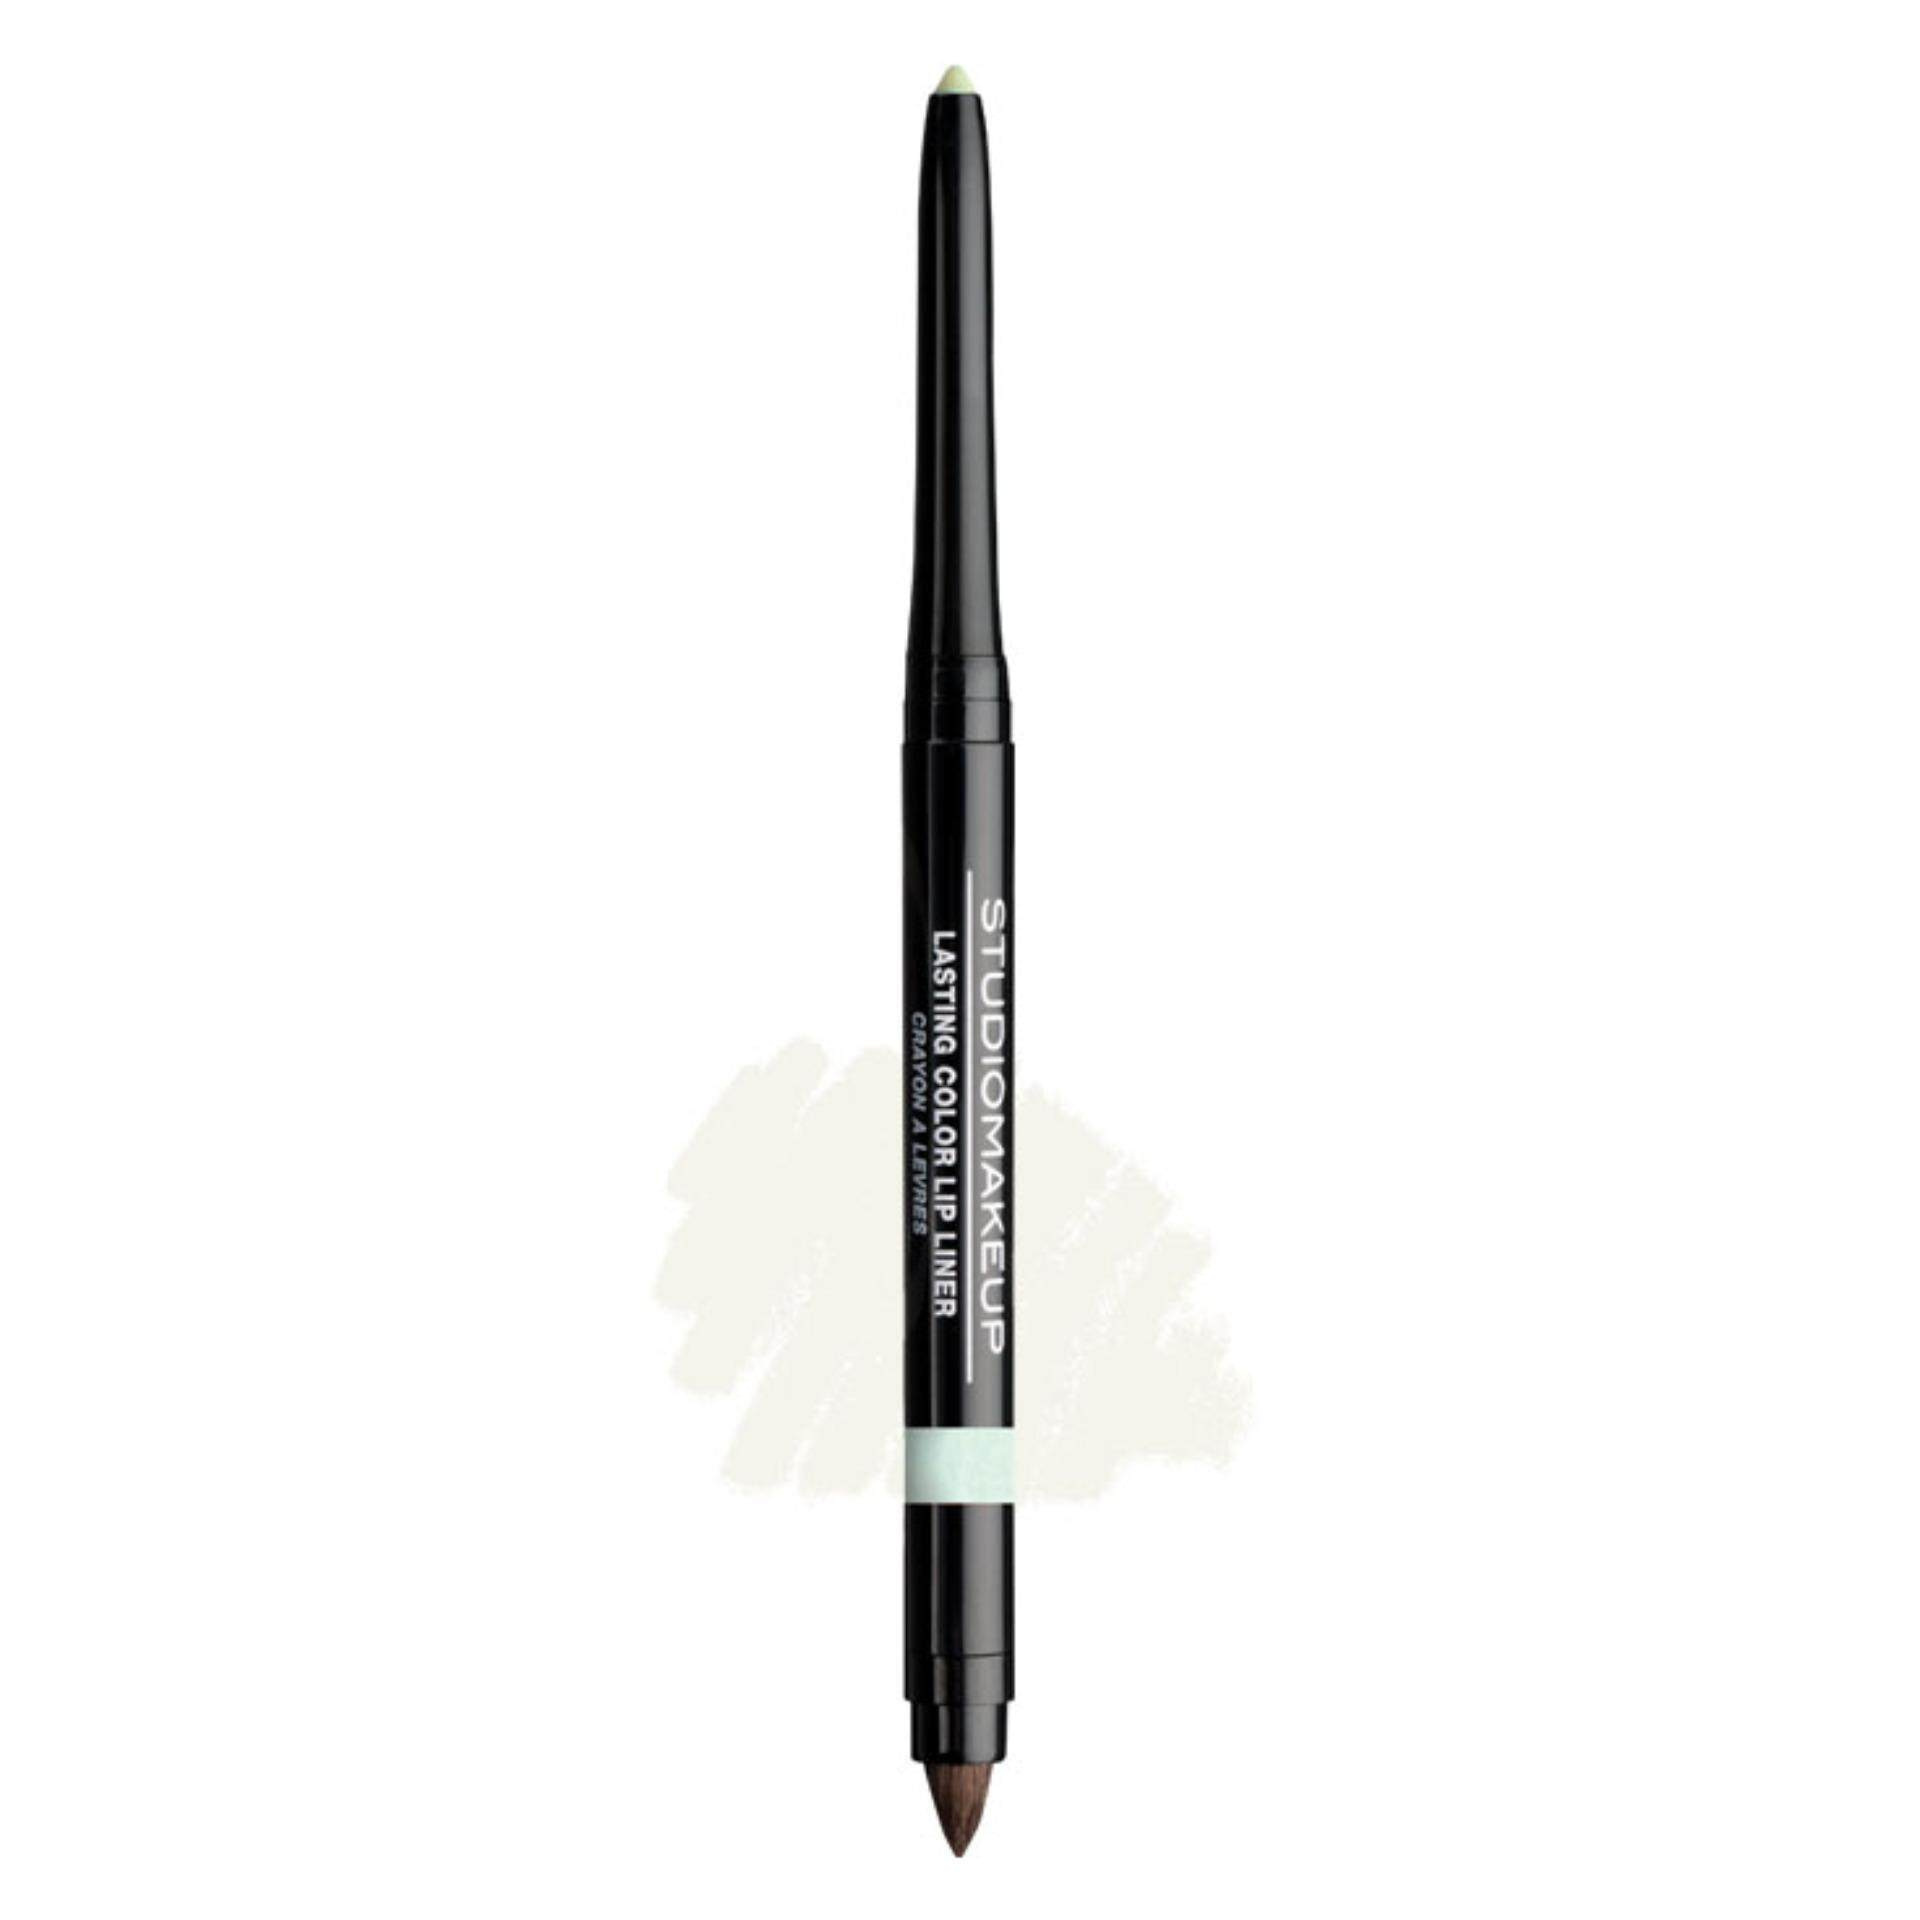 STUDIOMAKEUP Lasting Color Lip Liner Translucent